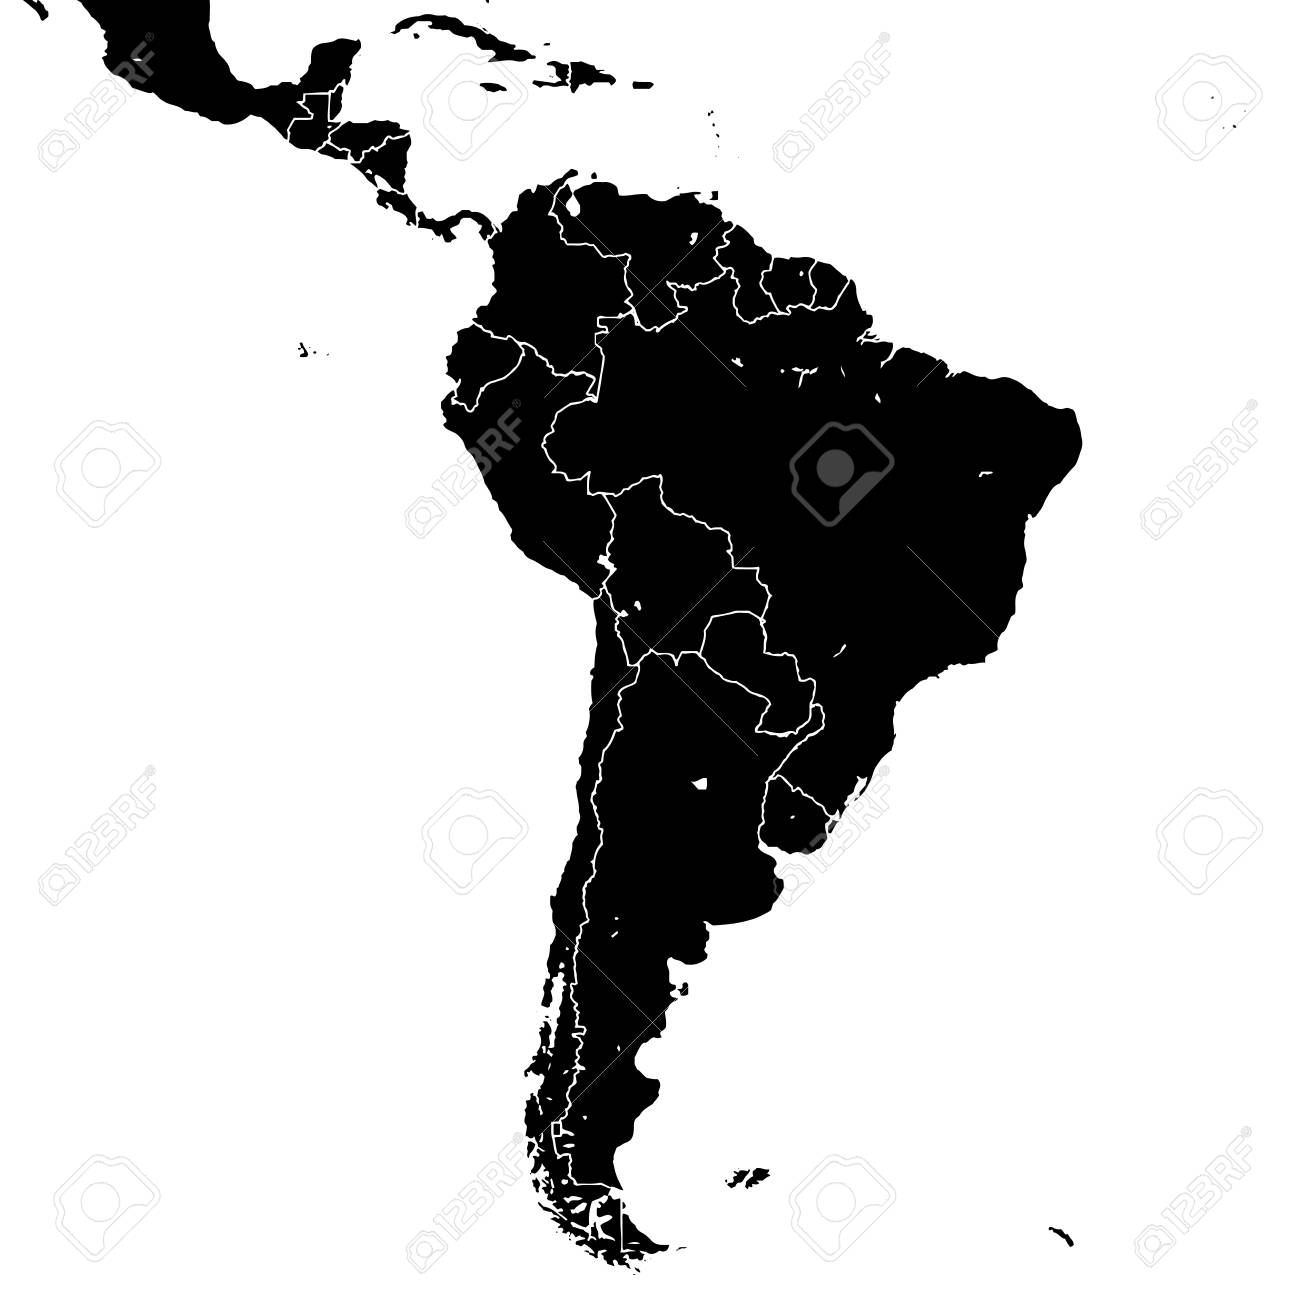 South America Silhouette Vector Map Black And White Version